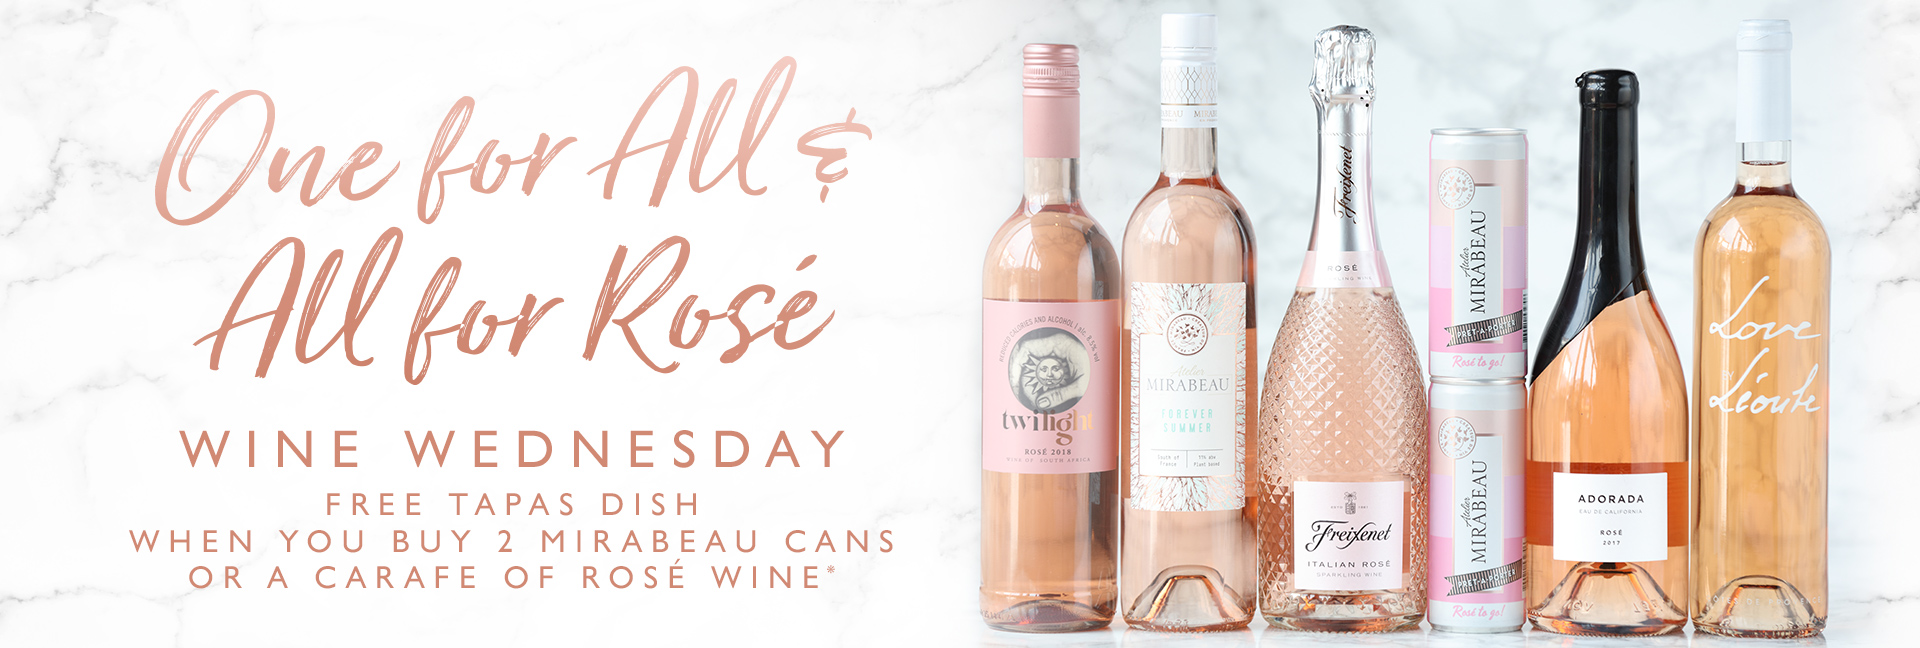 Wine Wednesday at All Bar One Portsmouth